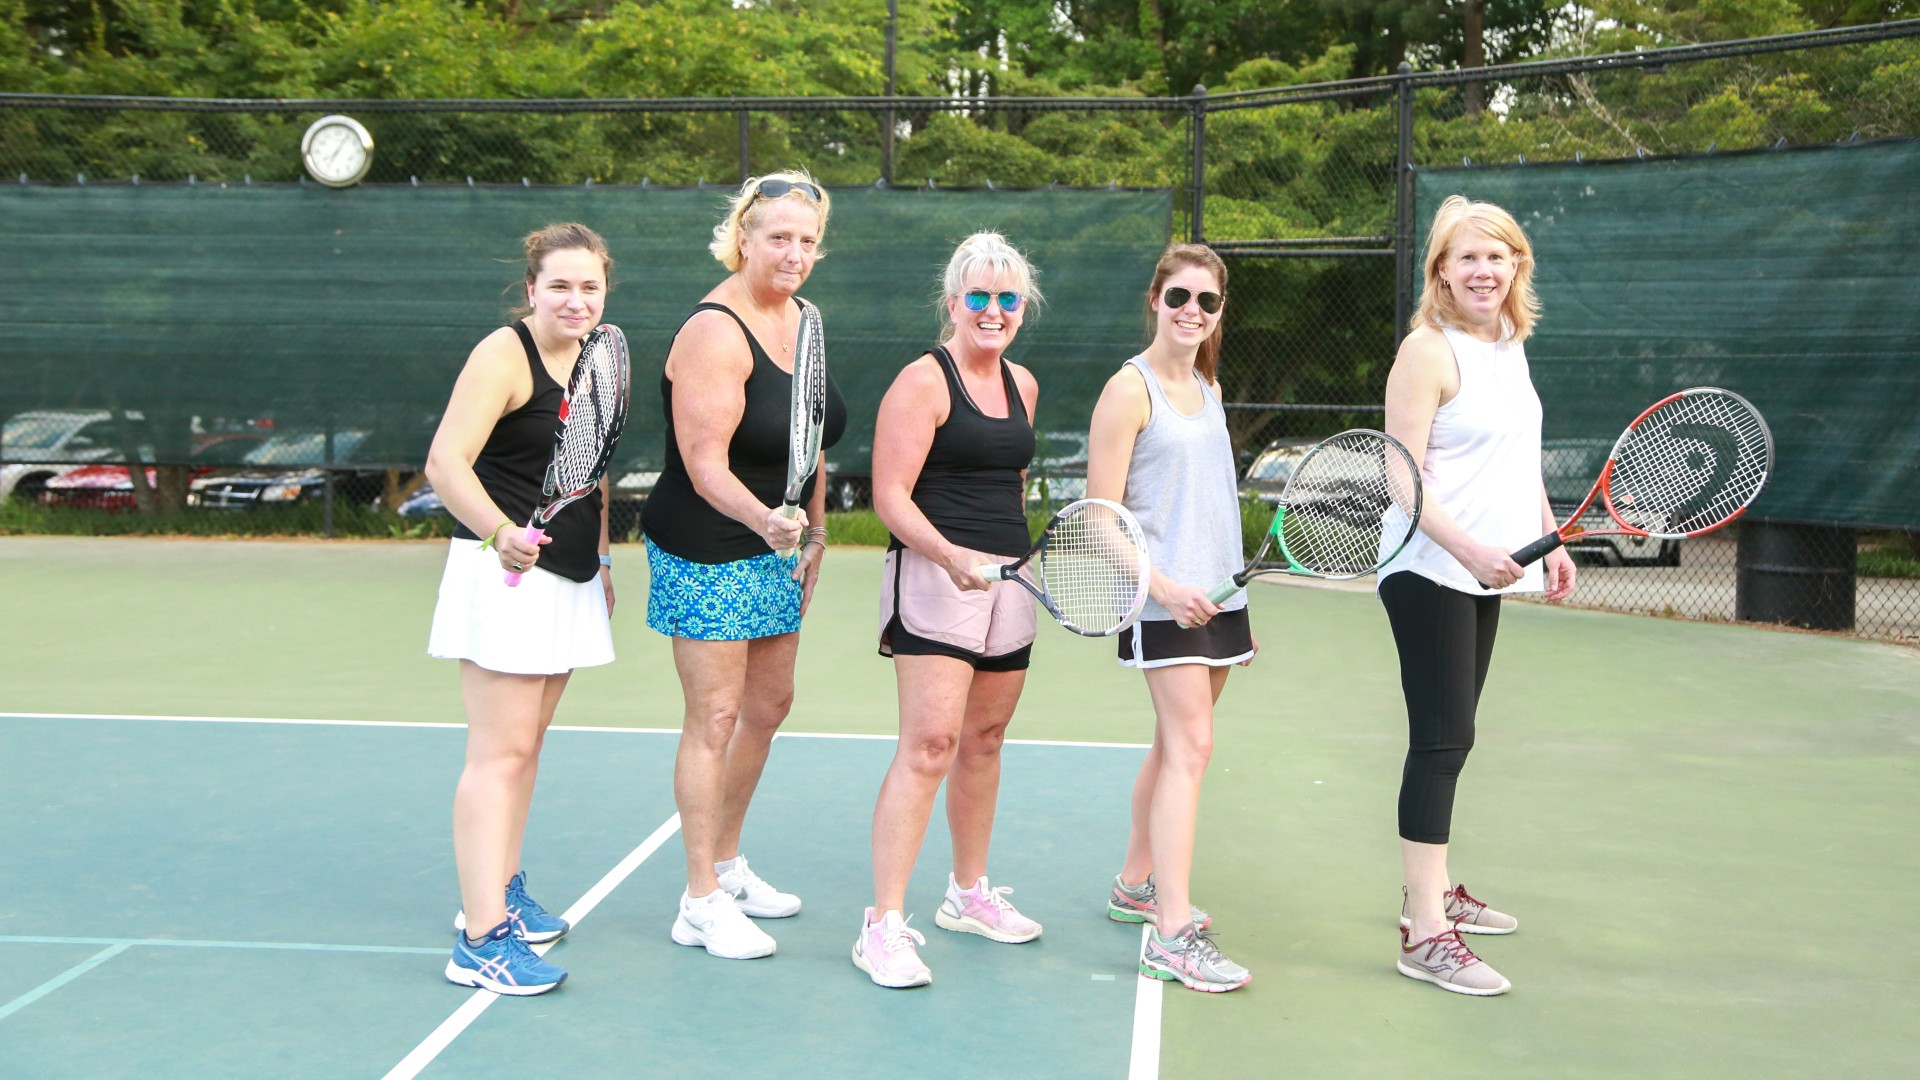 Group of adults posing for a picture on the tennis court